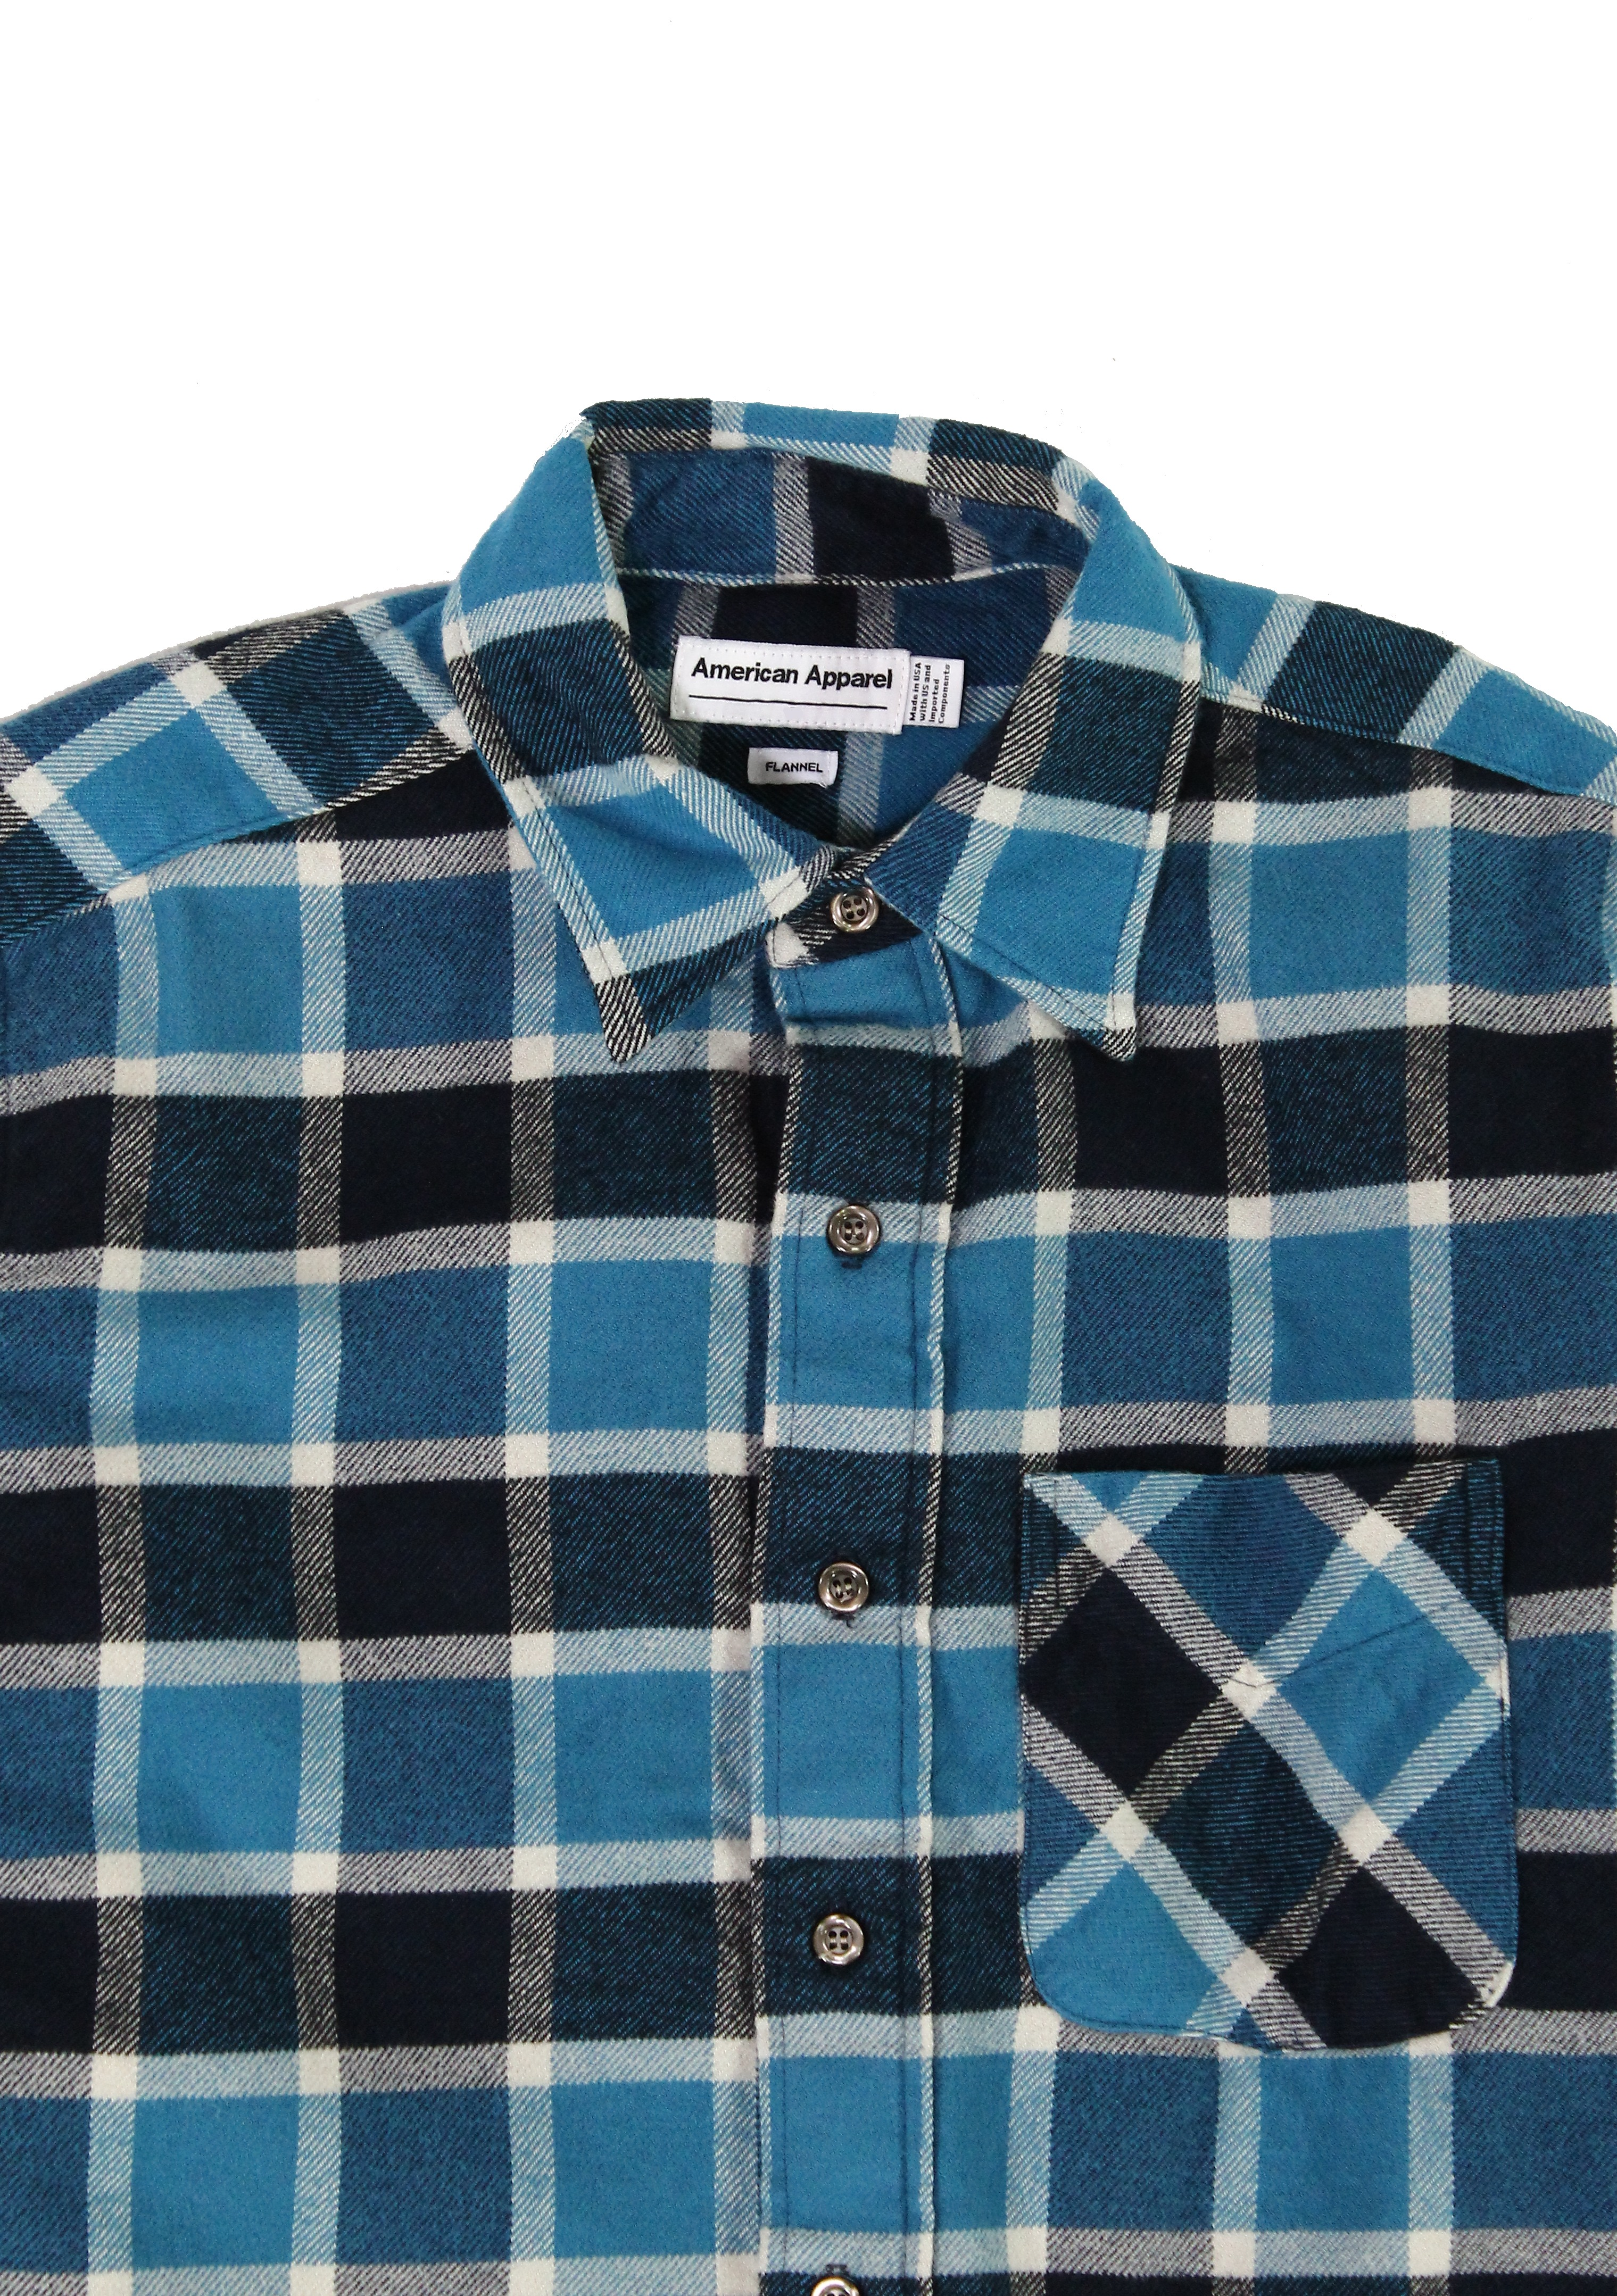 American-Apparel-NEW-Mens-Plaid-Flannel-Lumberjack-Classic-Fit-Button-Down-Shirt thumbnail 8